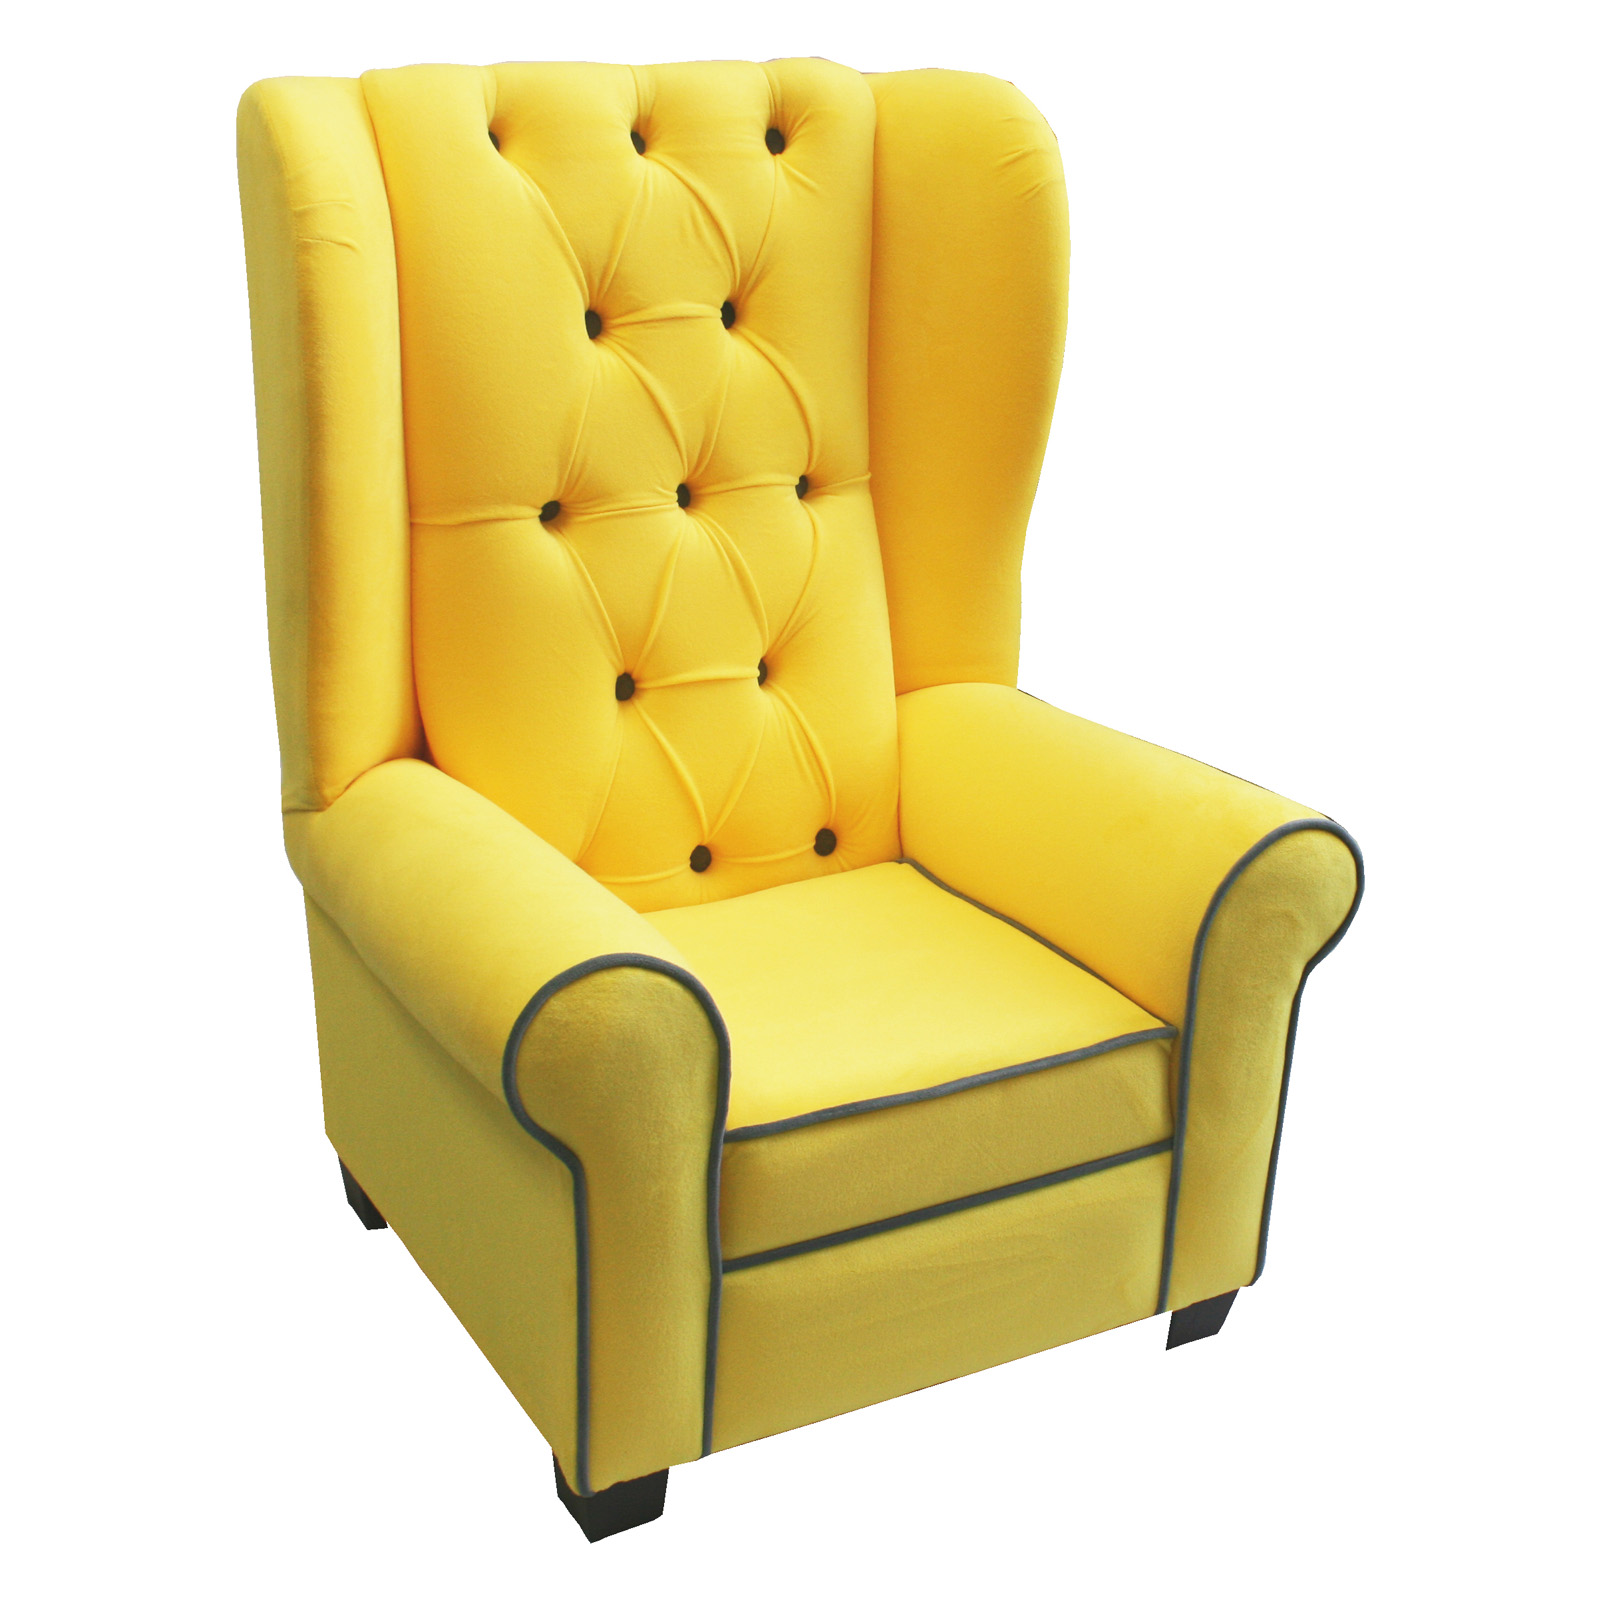 Newco Kids Mirage Chair Yellow With Gray Accent Dup Do